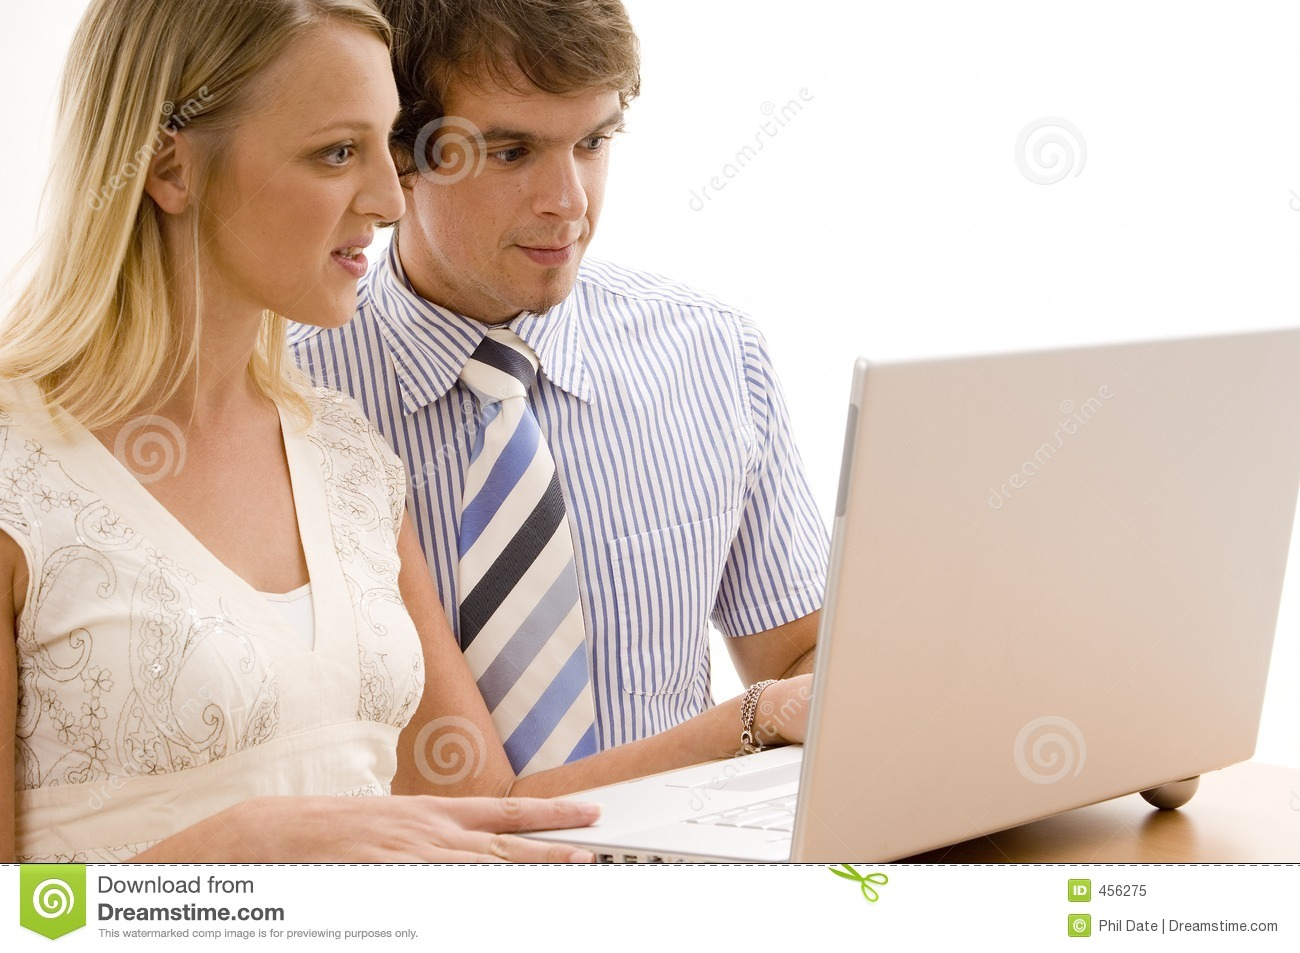 Download DS LS #12 stock image. Image of fashionable, technology - 456275